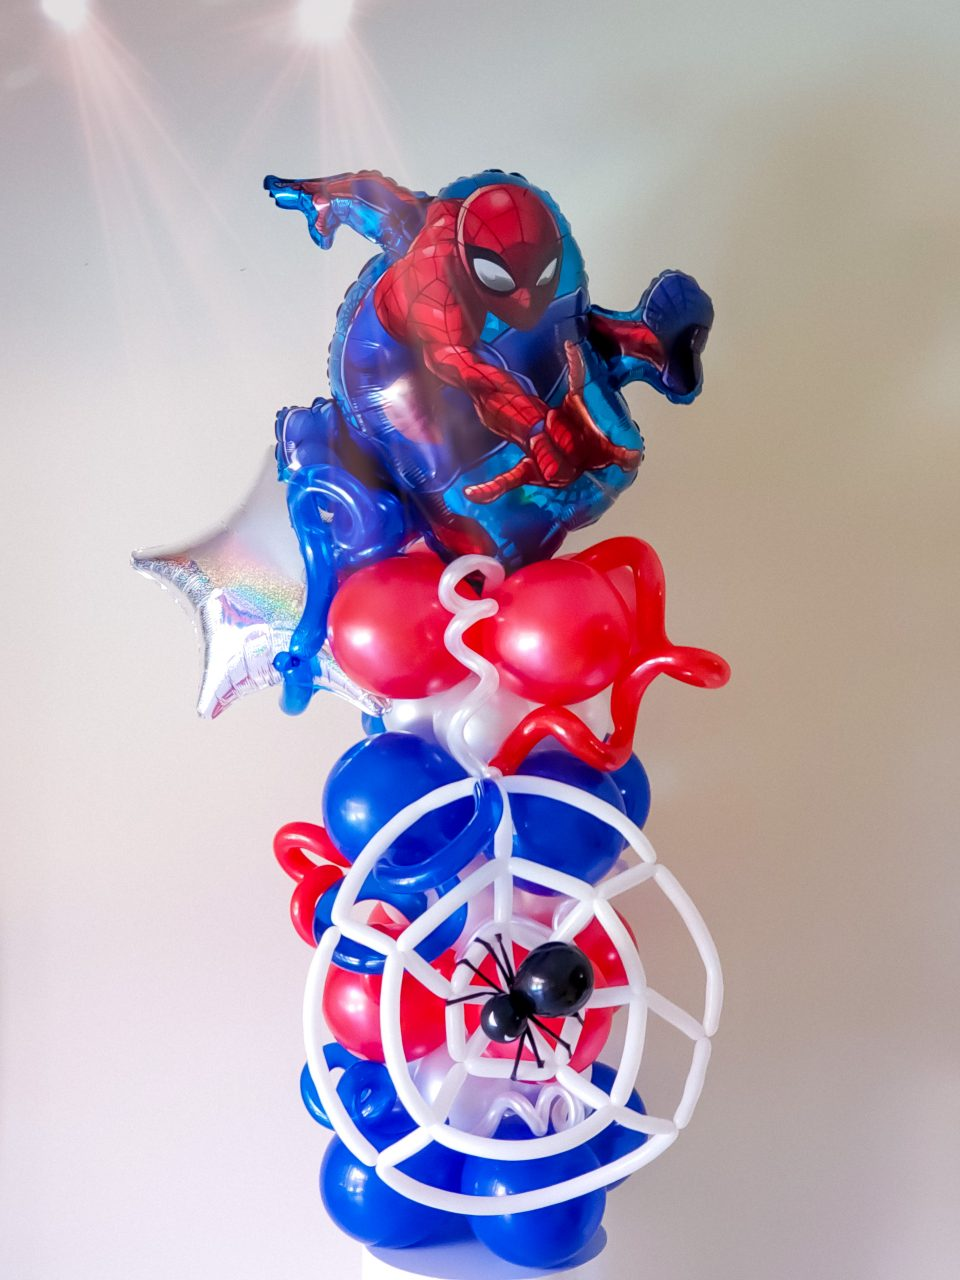 Super Hero ColumnVeroballoon.com Decorations Miami